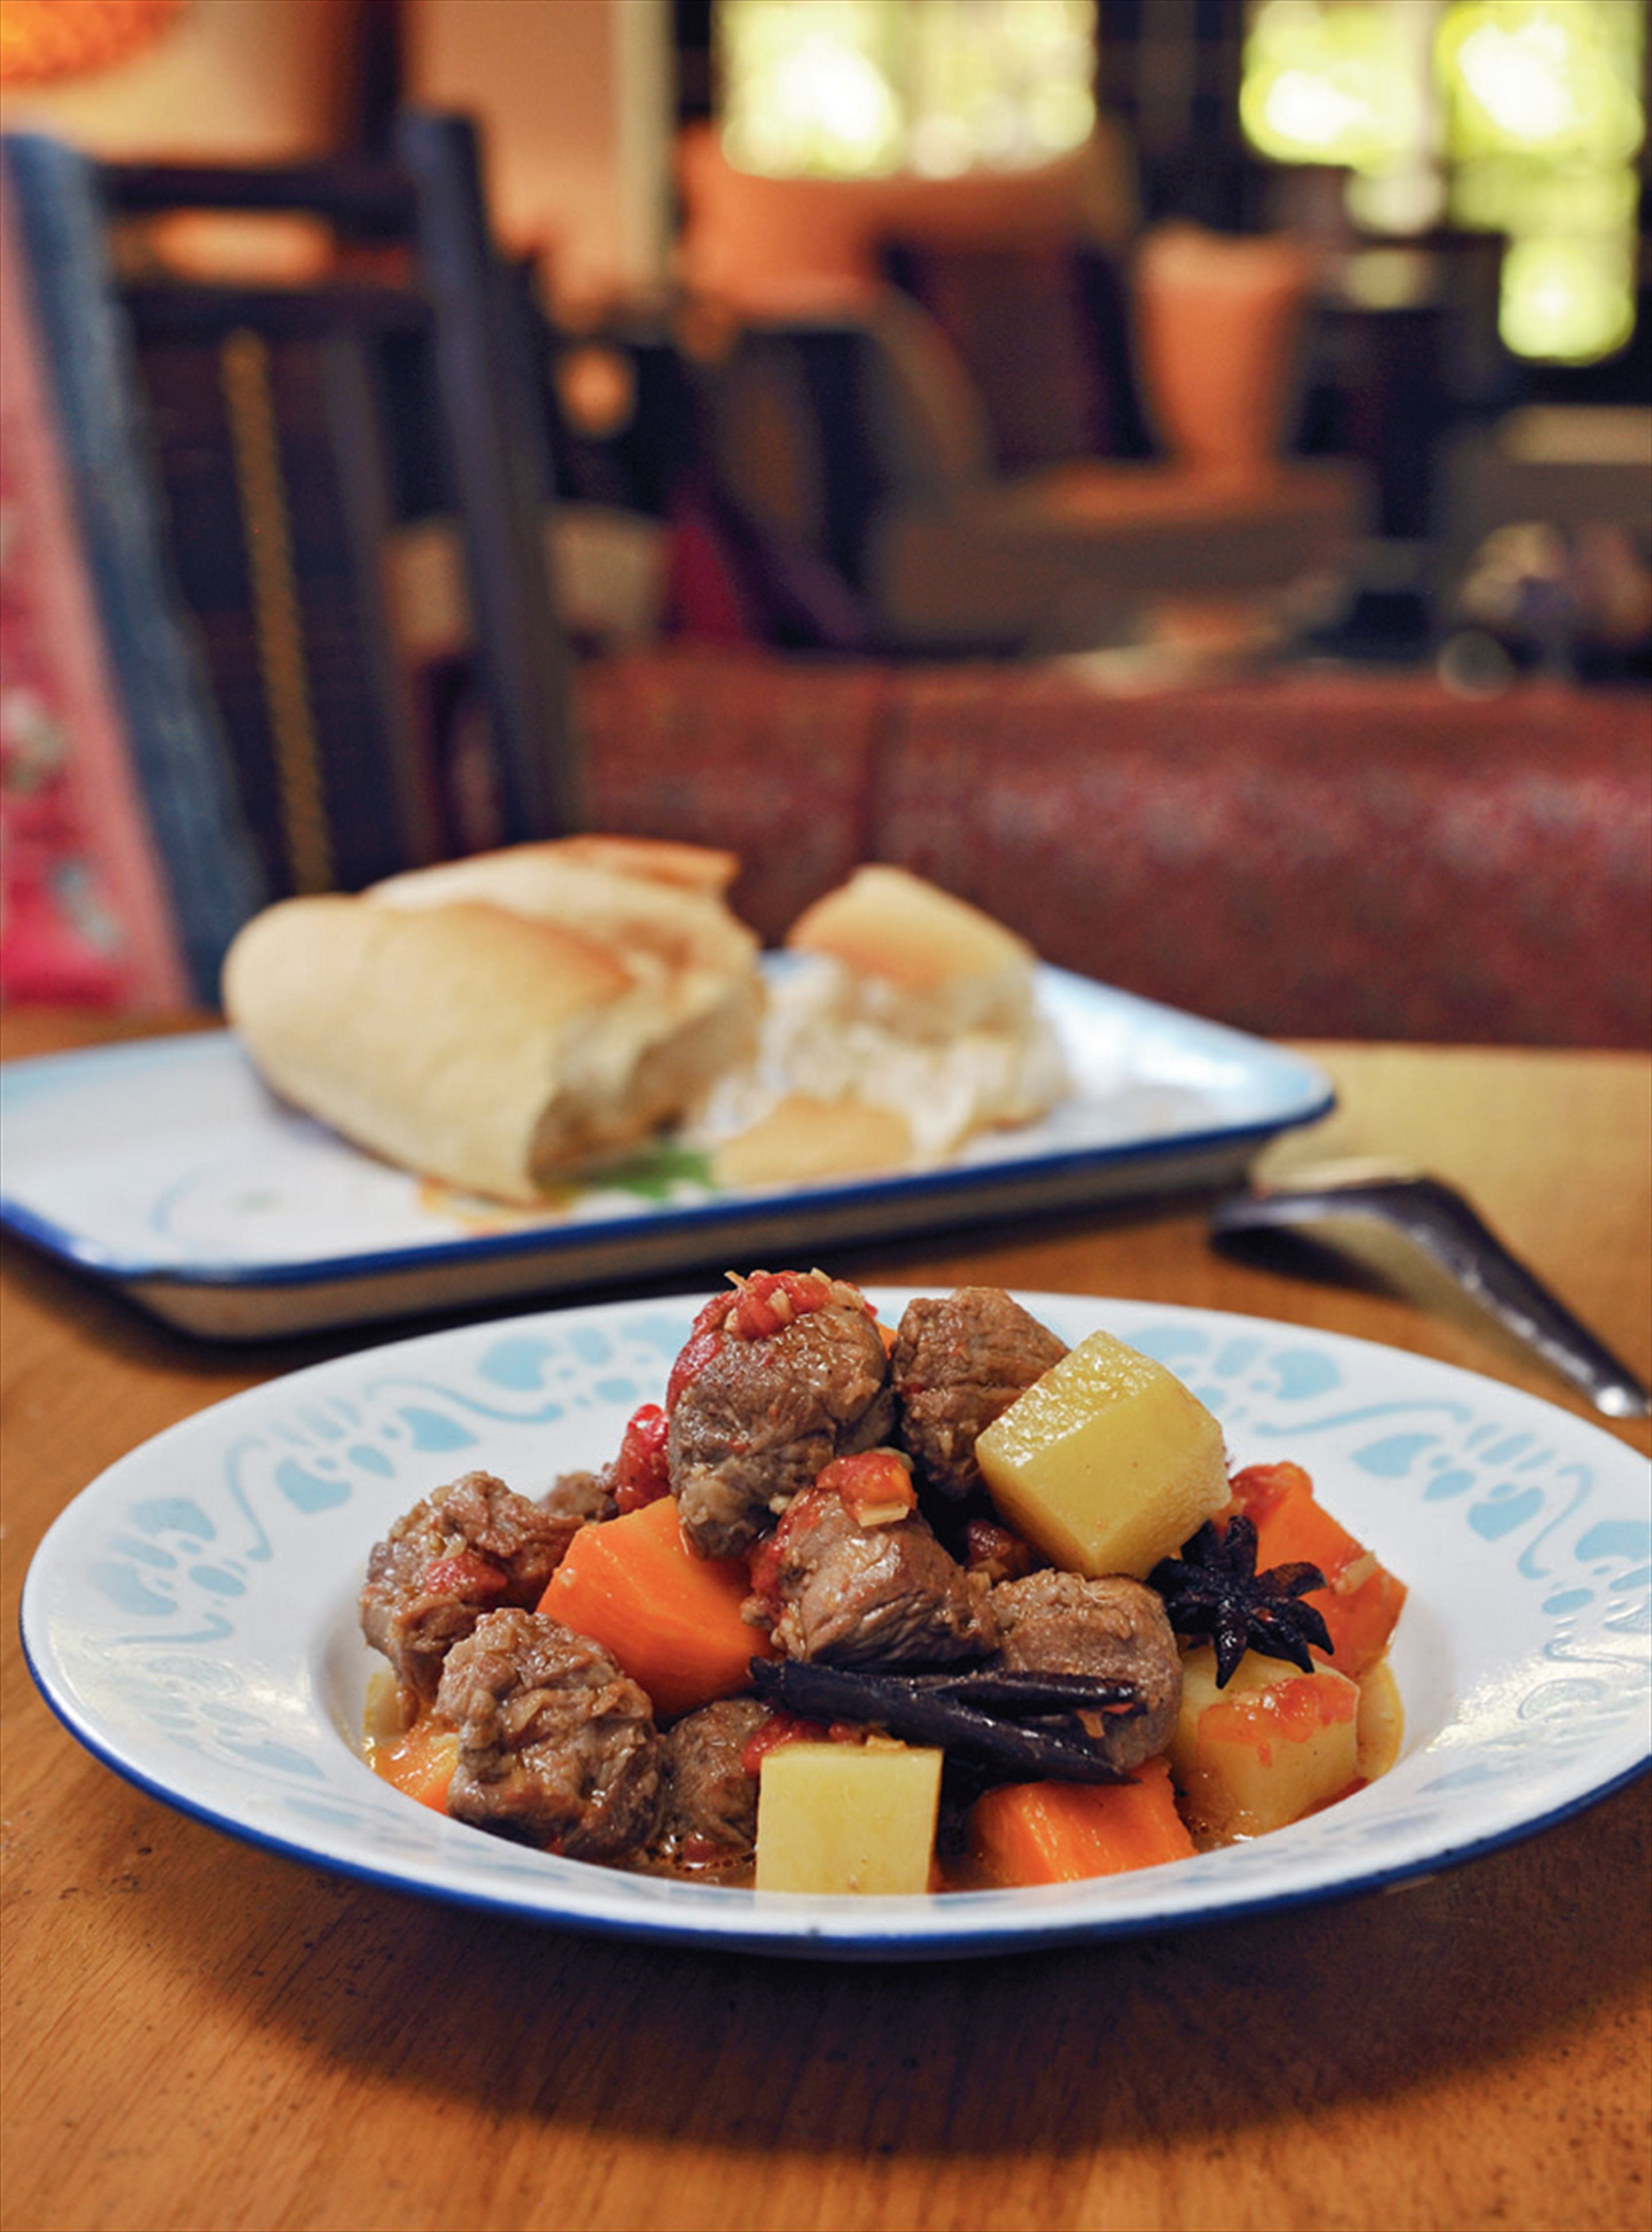 Braised beef with lemongrass and star anise